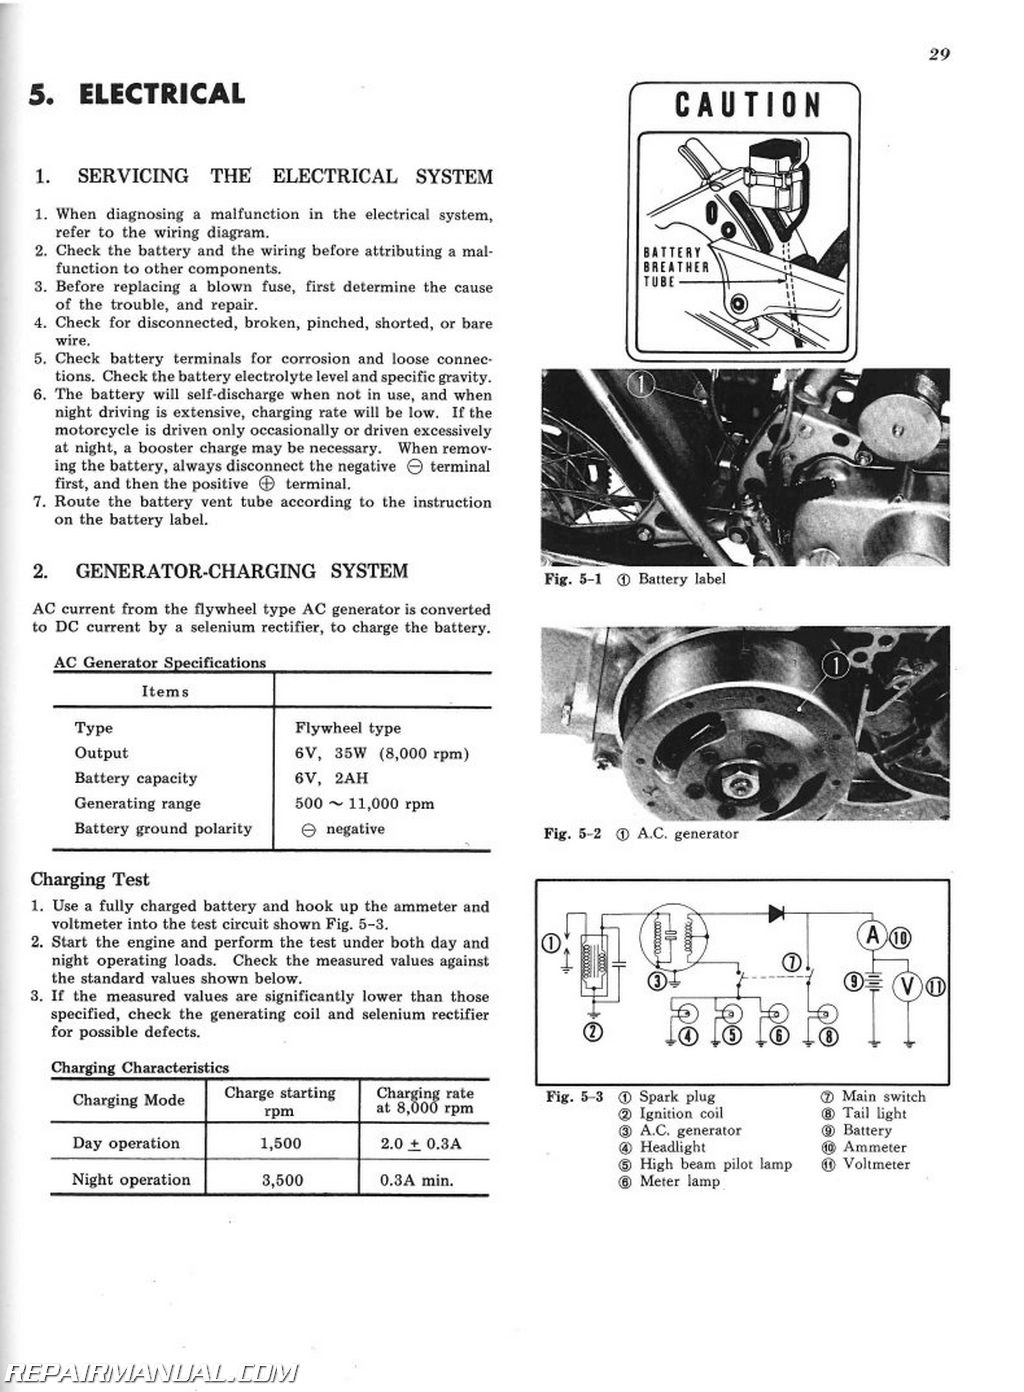 1971-1976 Honda SL70 XL70 Motorcycle Service Manual